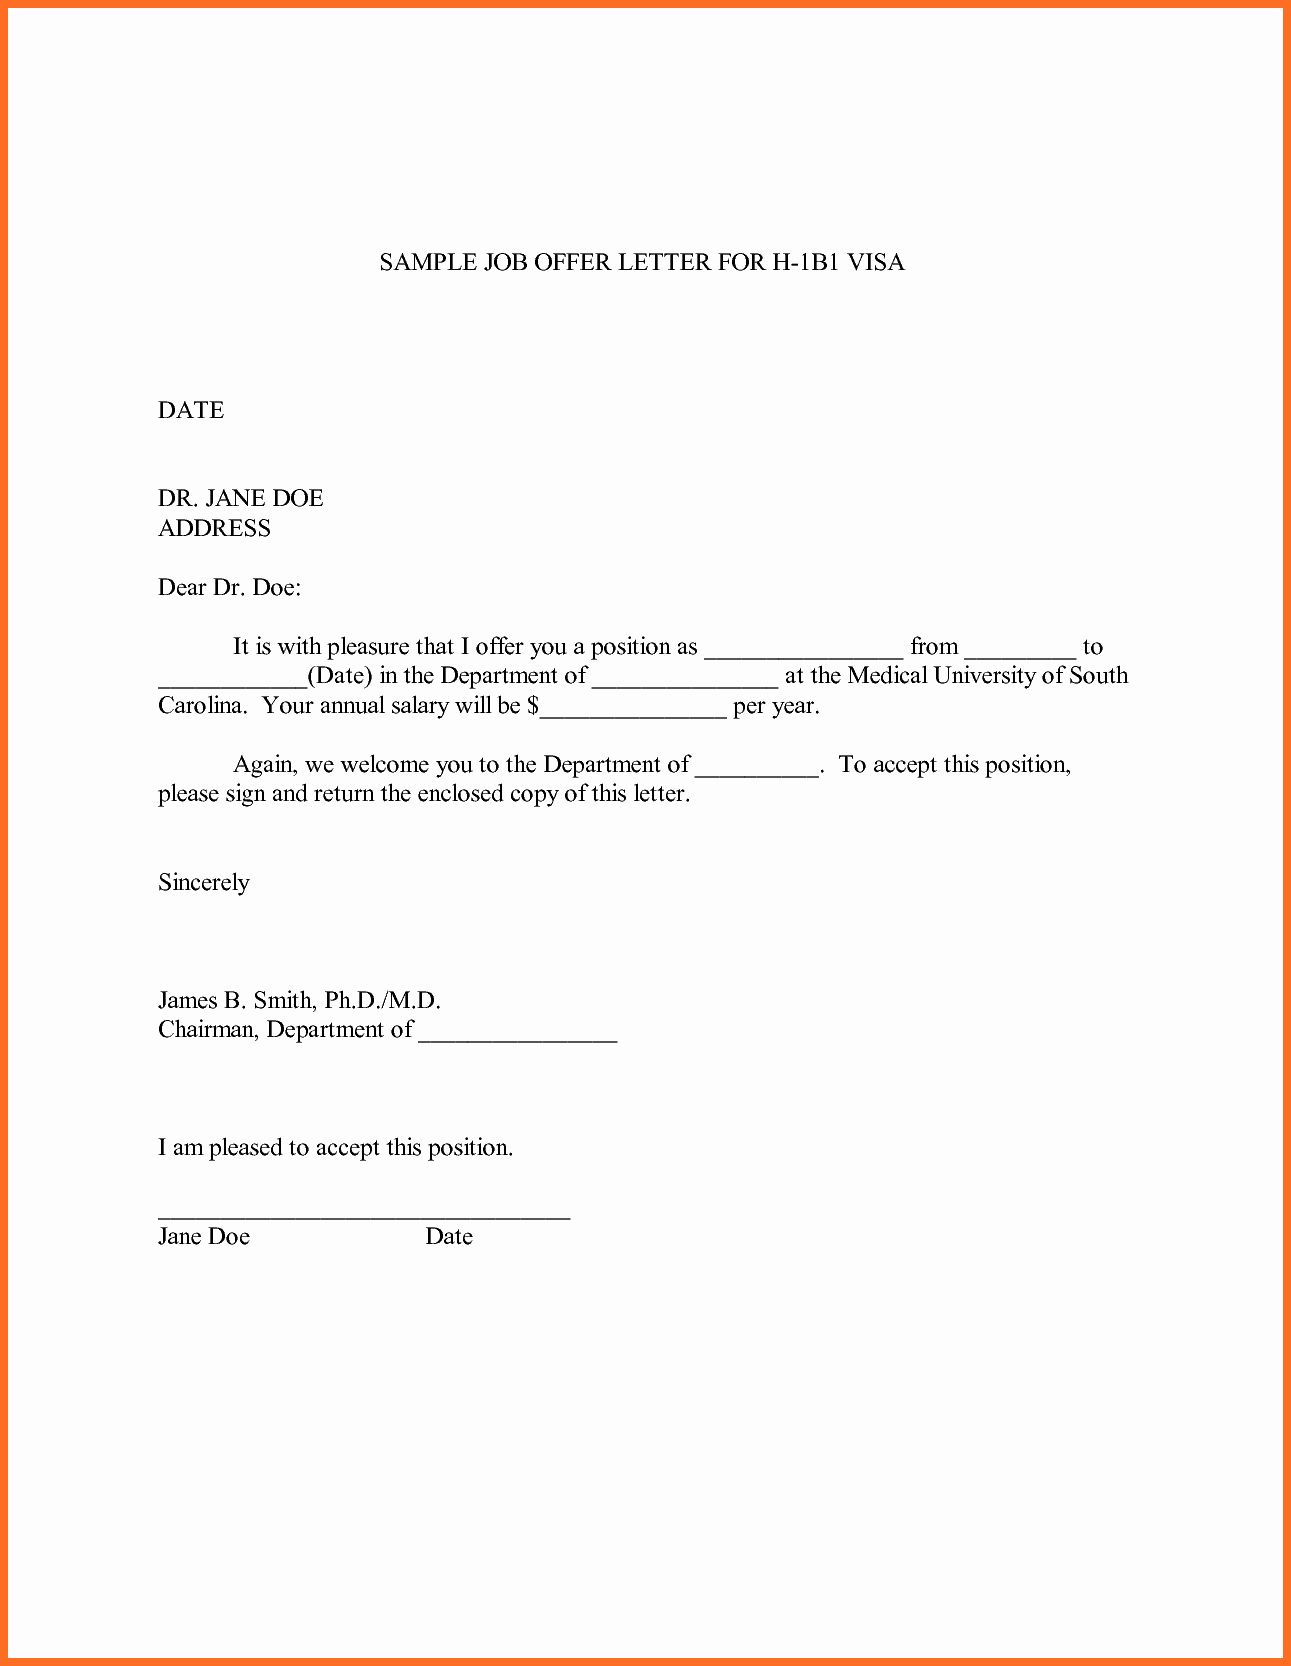 Employment Offer Letter Templates Awesome Sample Fer Letter Lettering Letter Templates Printable Letter Templates Simple job offer letter template